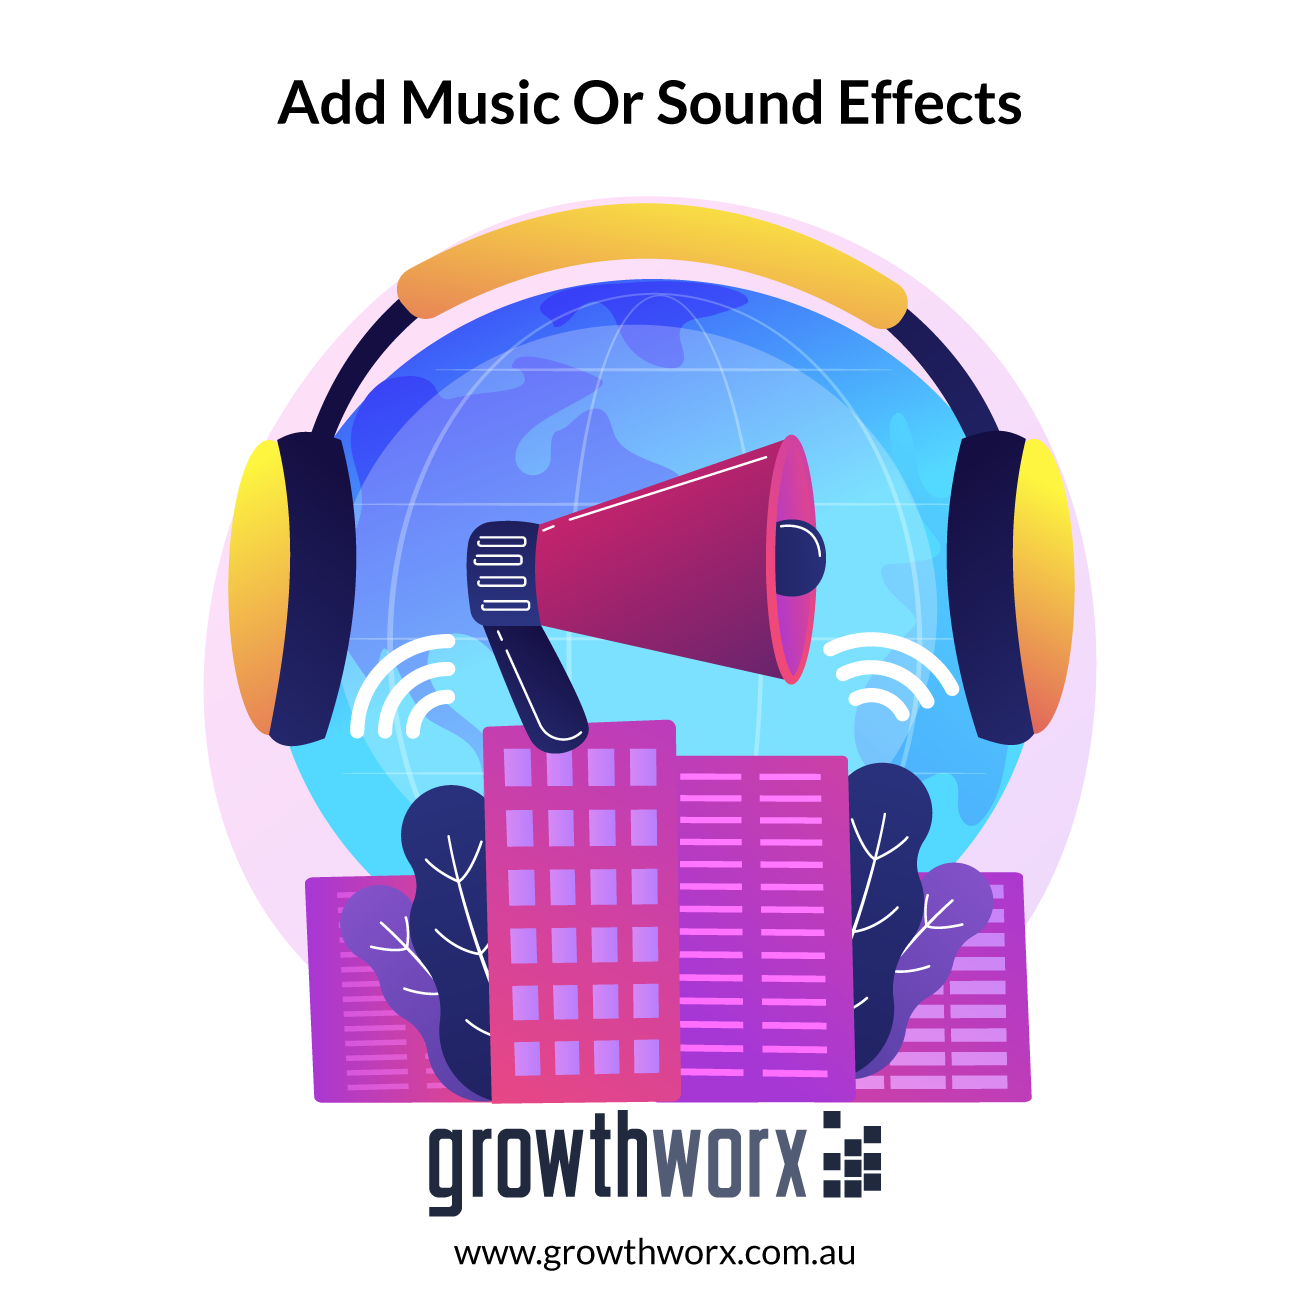 We will add music or sound effects to your audio or video 1